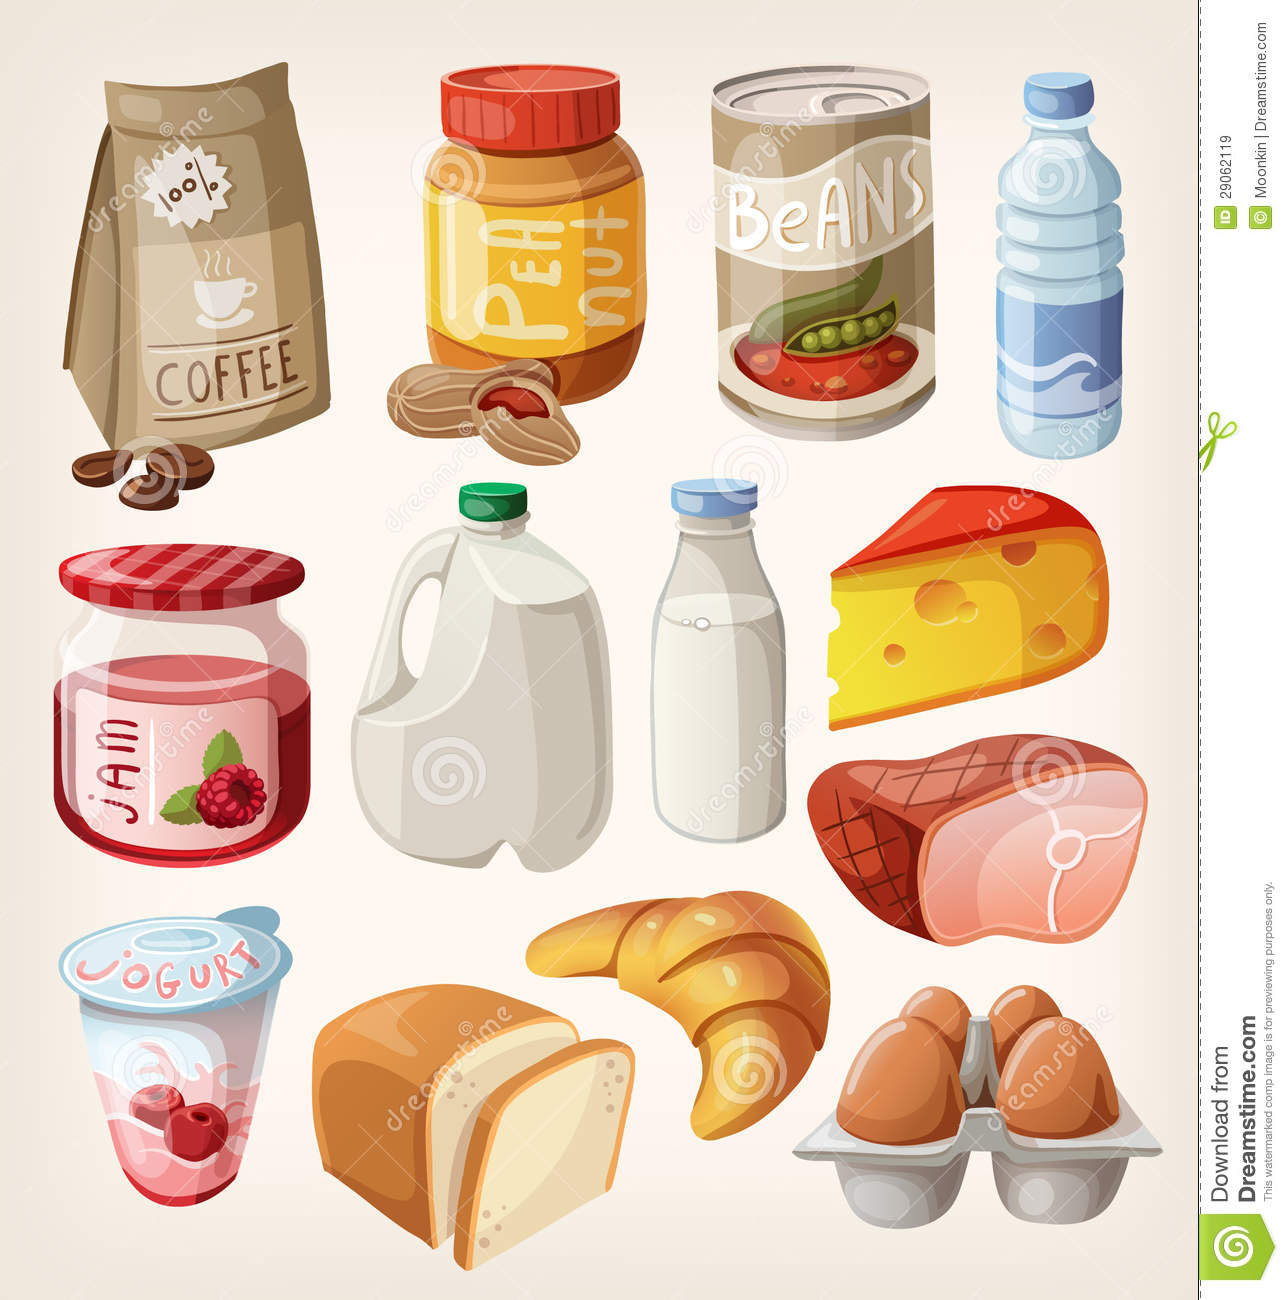 Buy Food Collection Of Food That We Buy Or Eat Every Day Stock